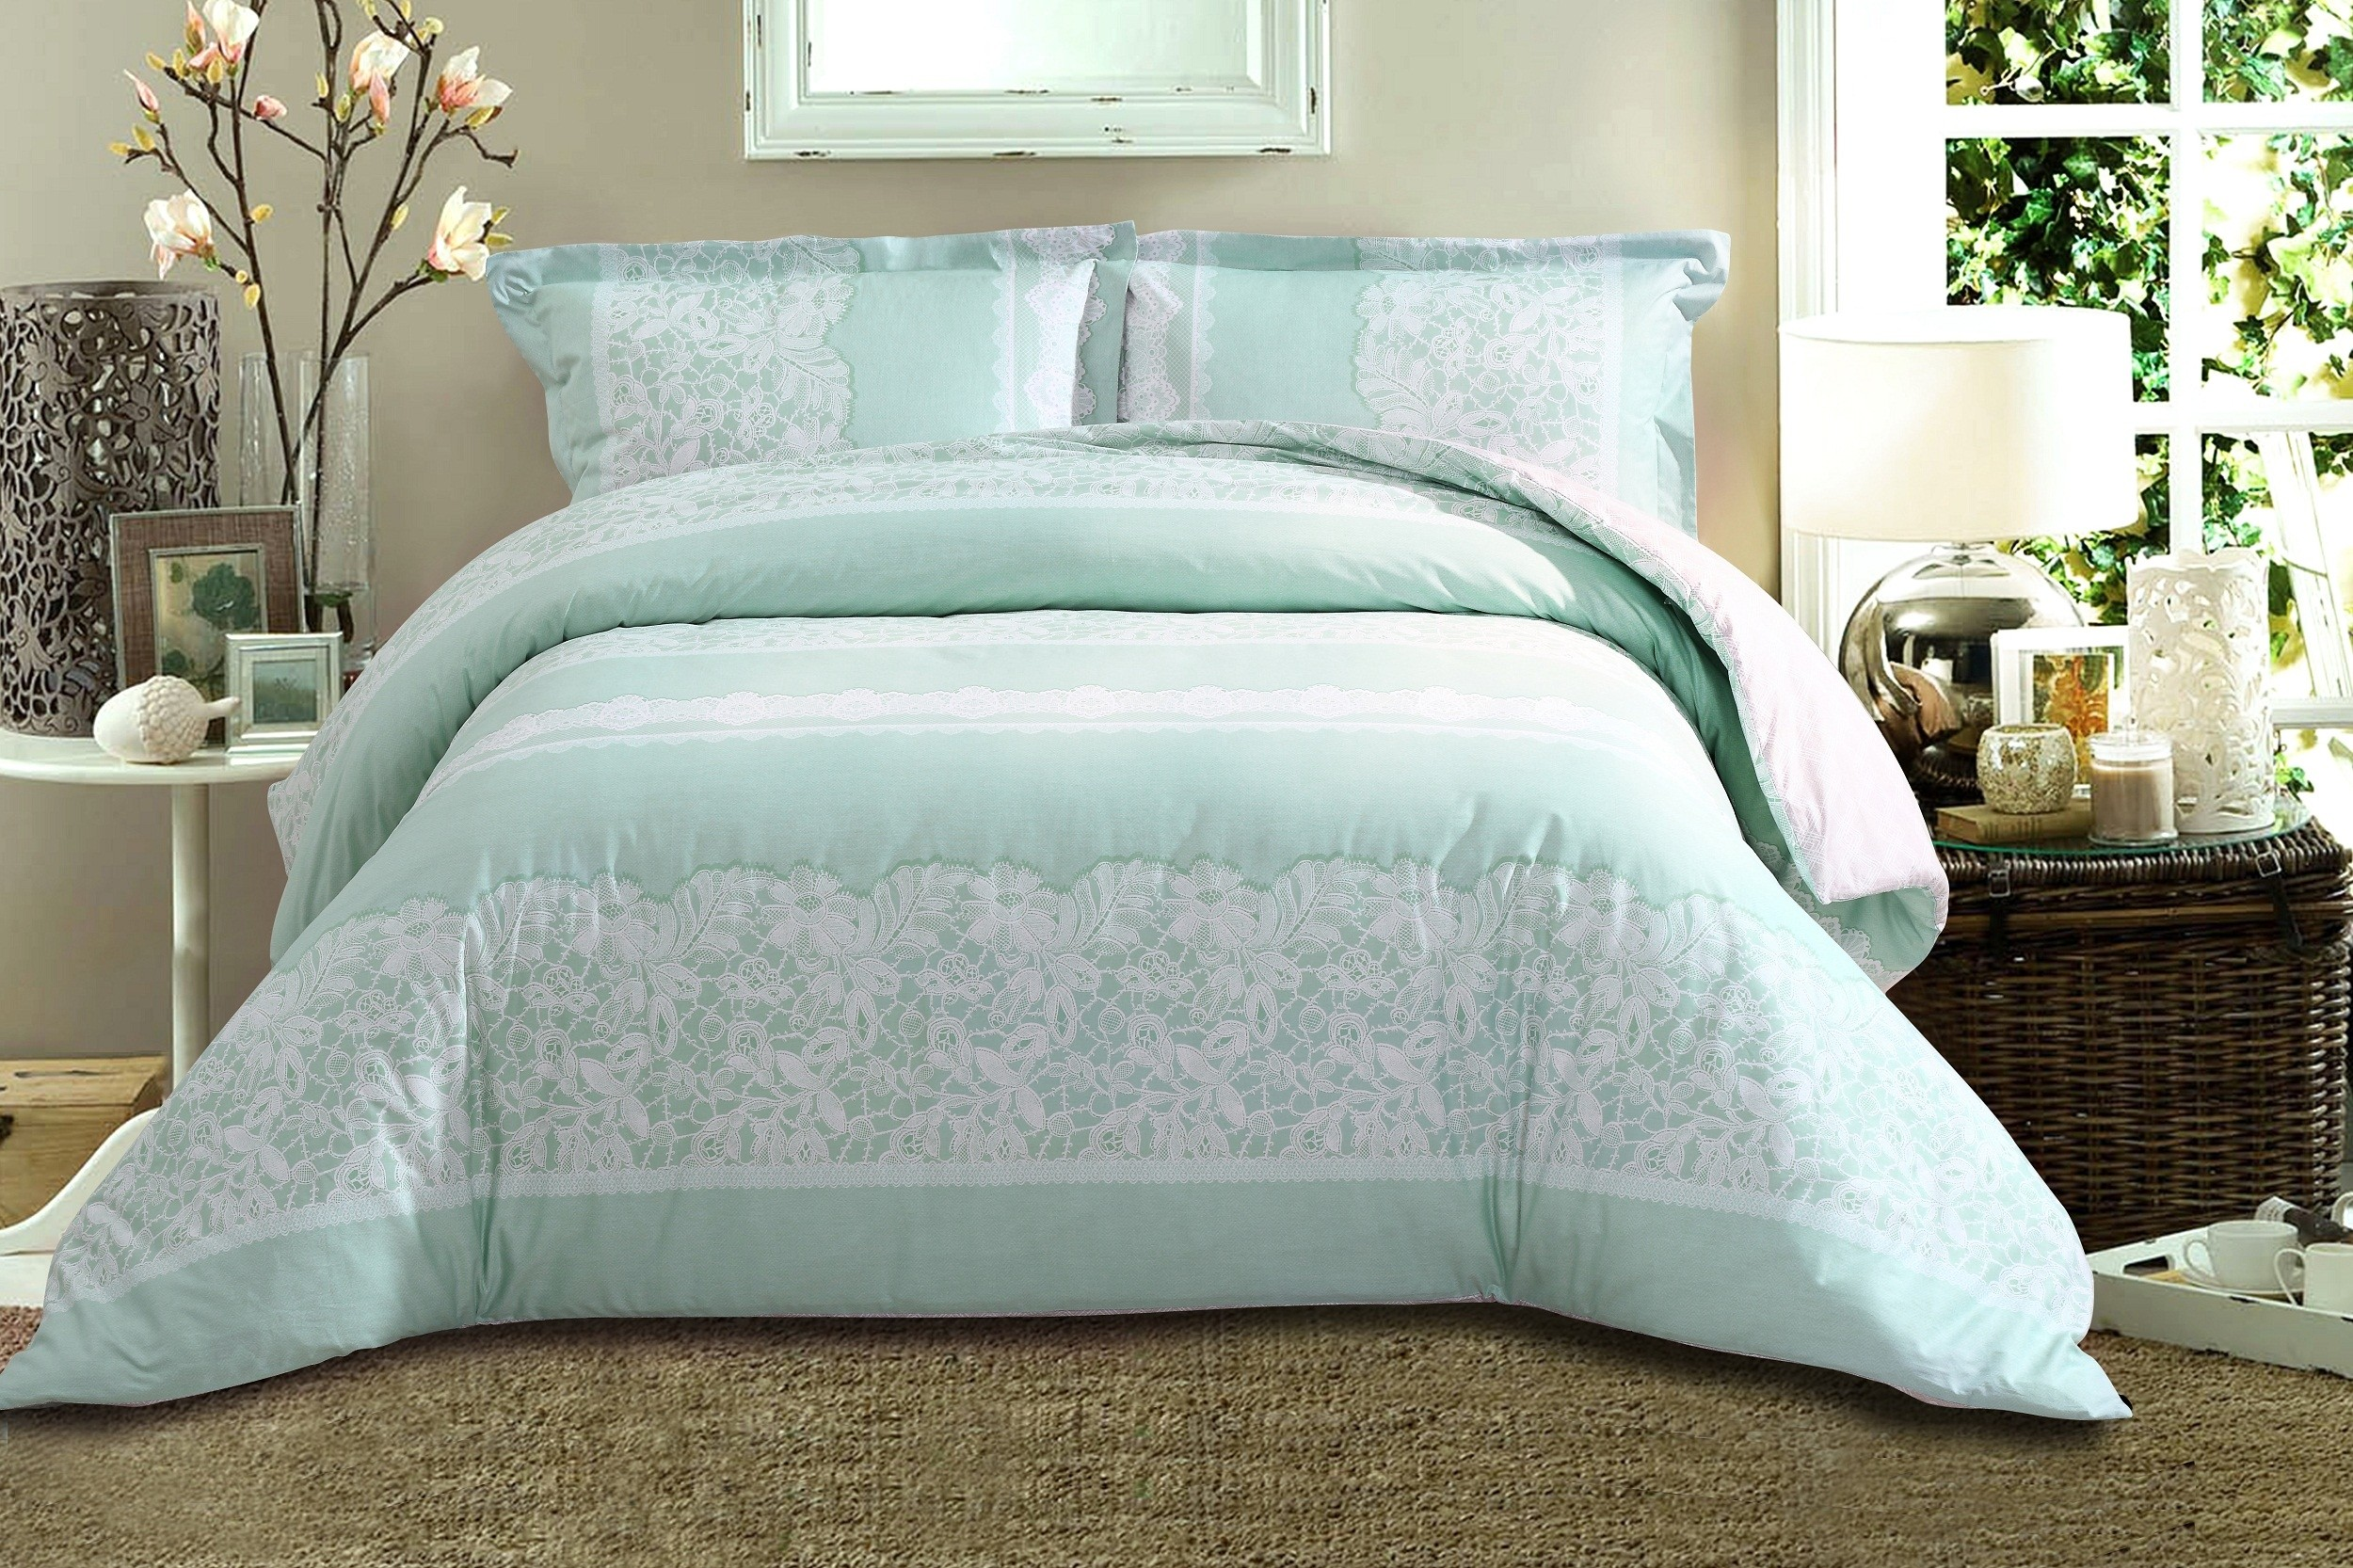 Oculus living royal hotel collection pigment print series mint green white floral lace bed set